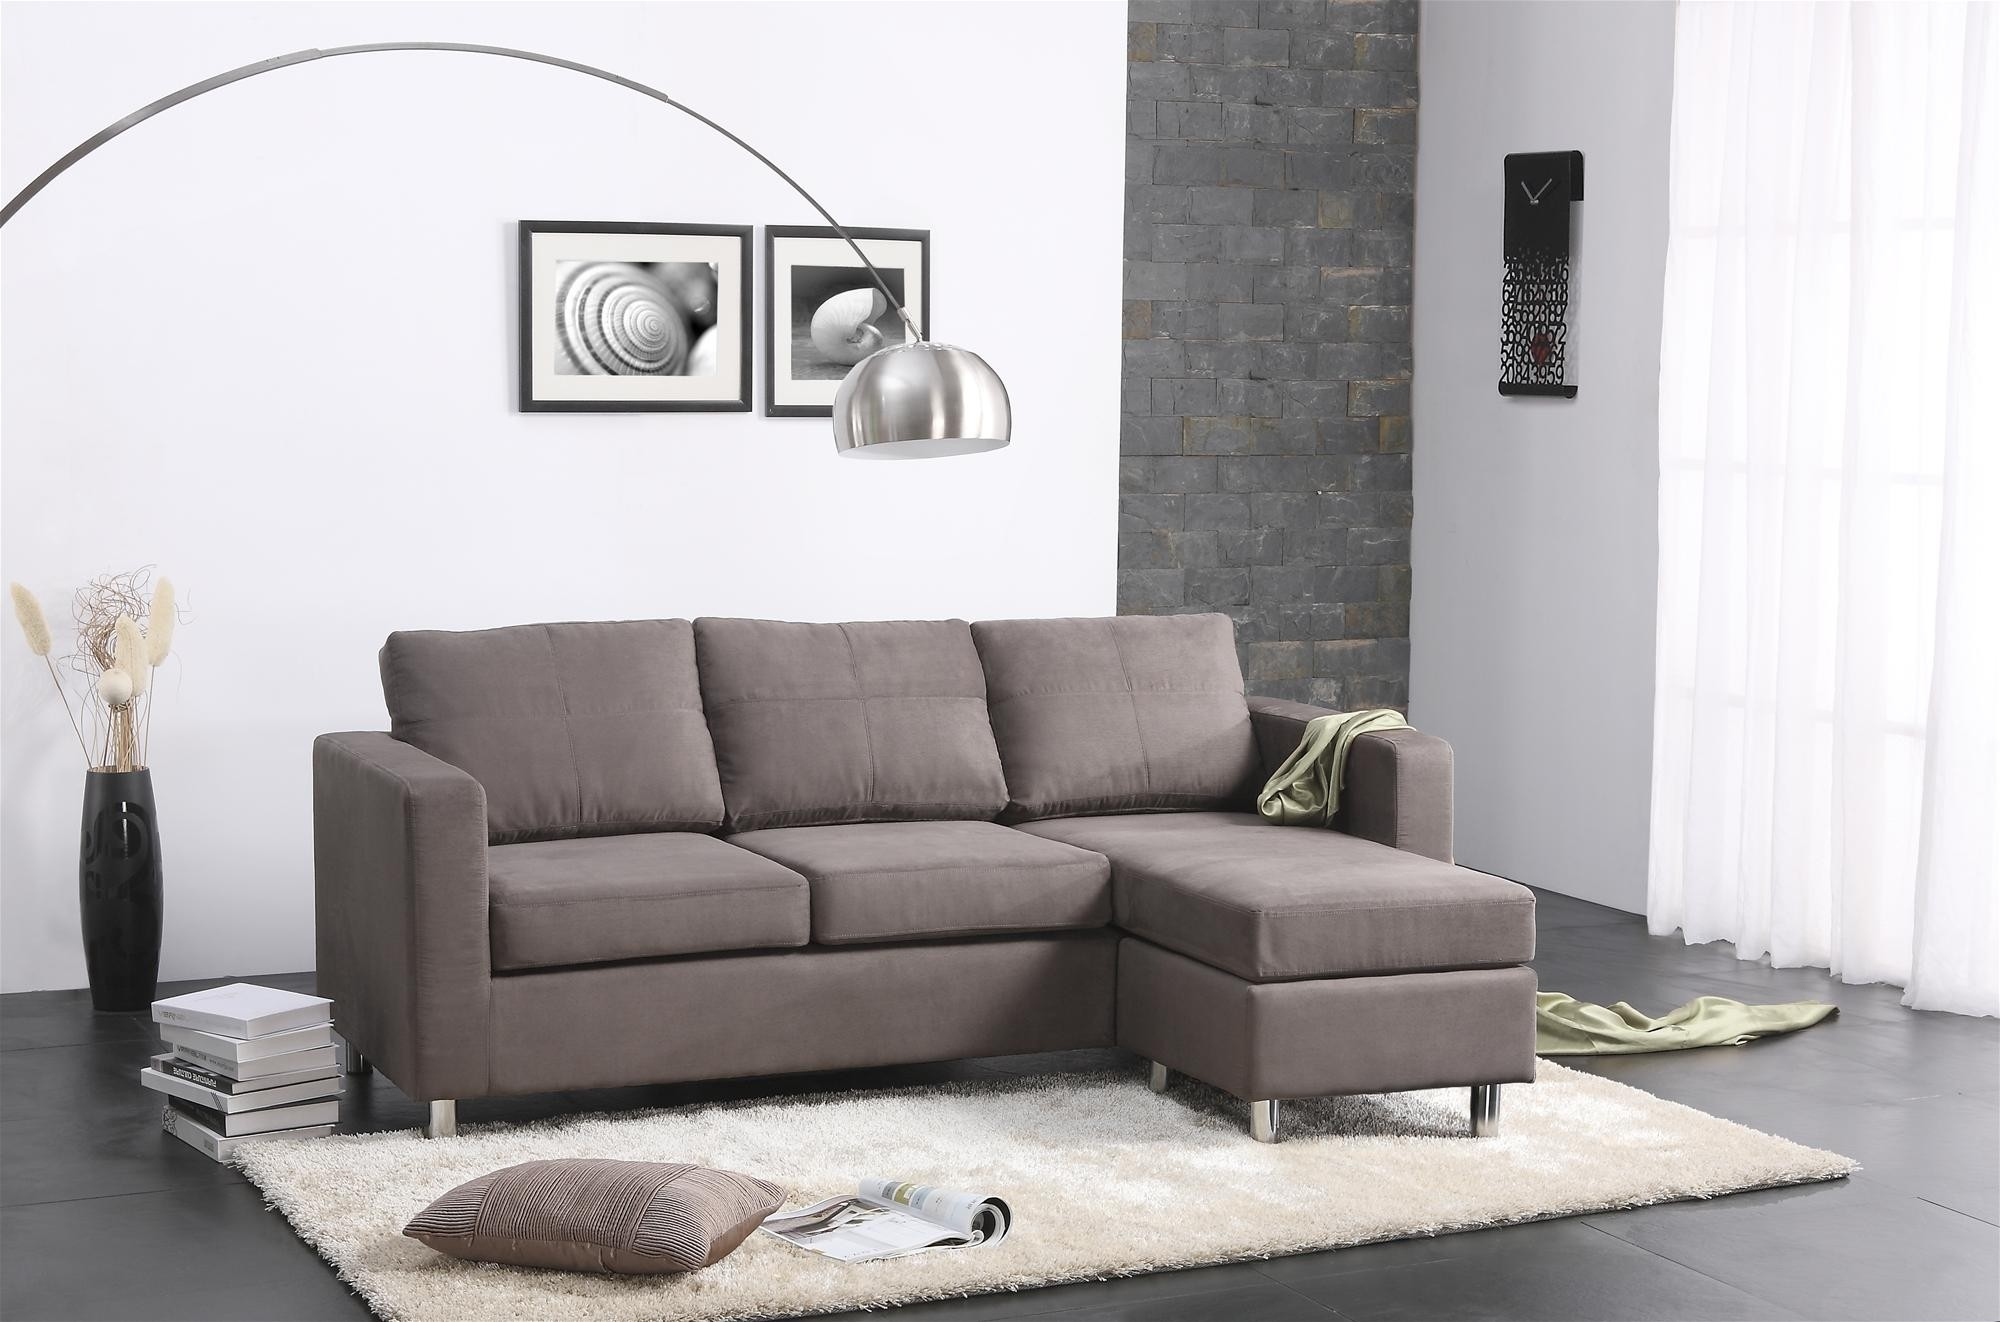 Superb Small Space Sectional Sofa #1606 : Furniture – Best Furniture Throughout Narrow Spaces Sectional Sofas (Image 10 of 10)